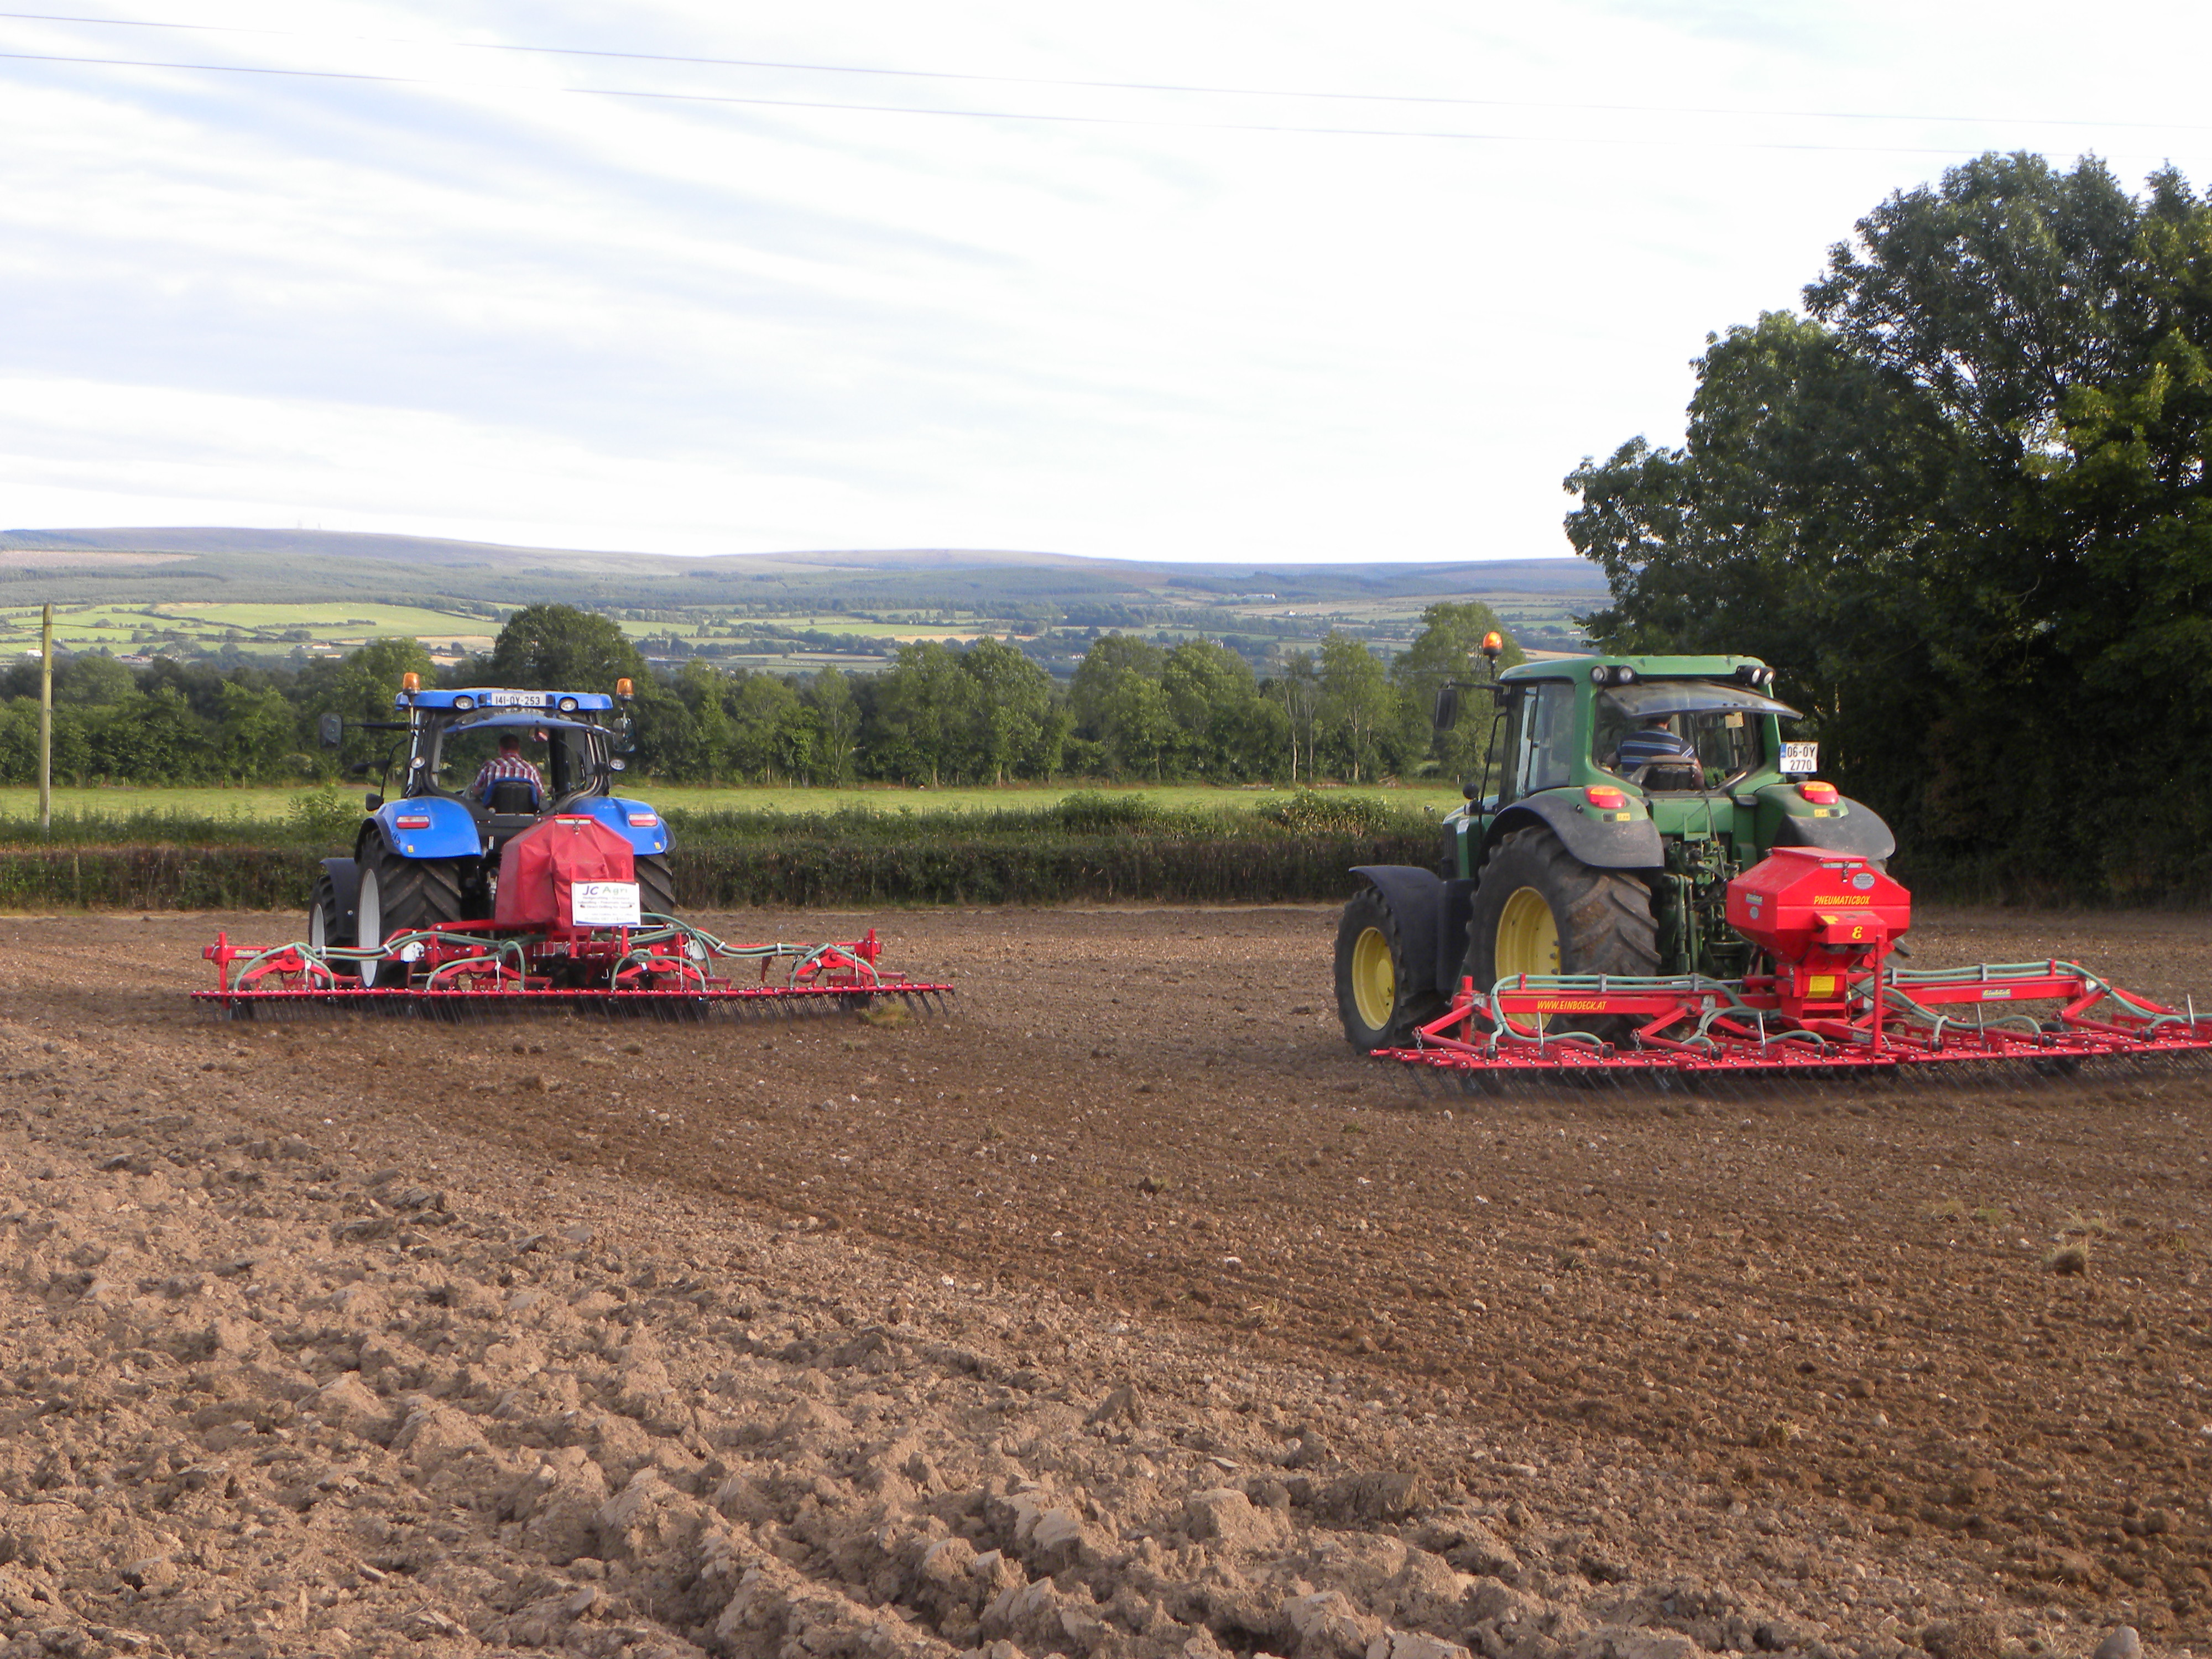 Einbock systems in operation on tilled ground